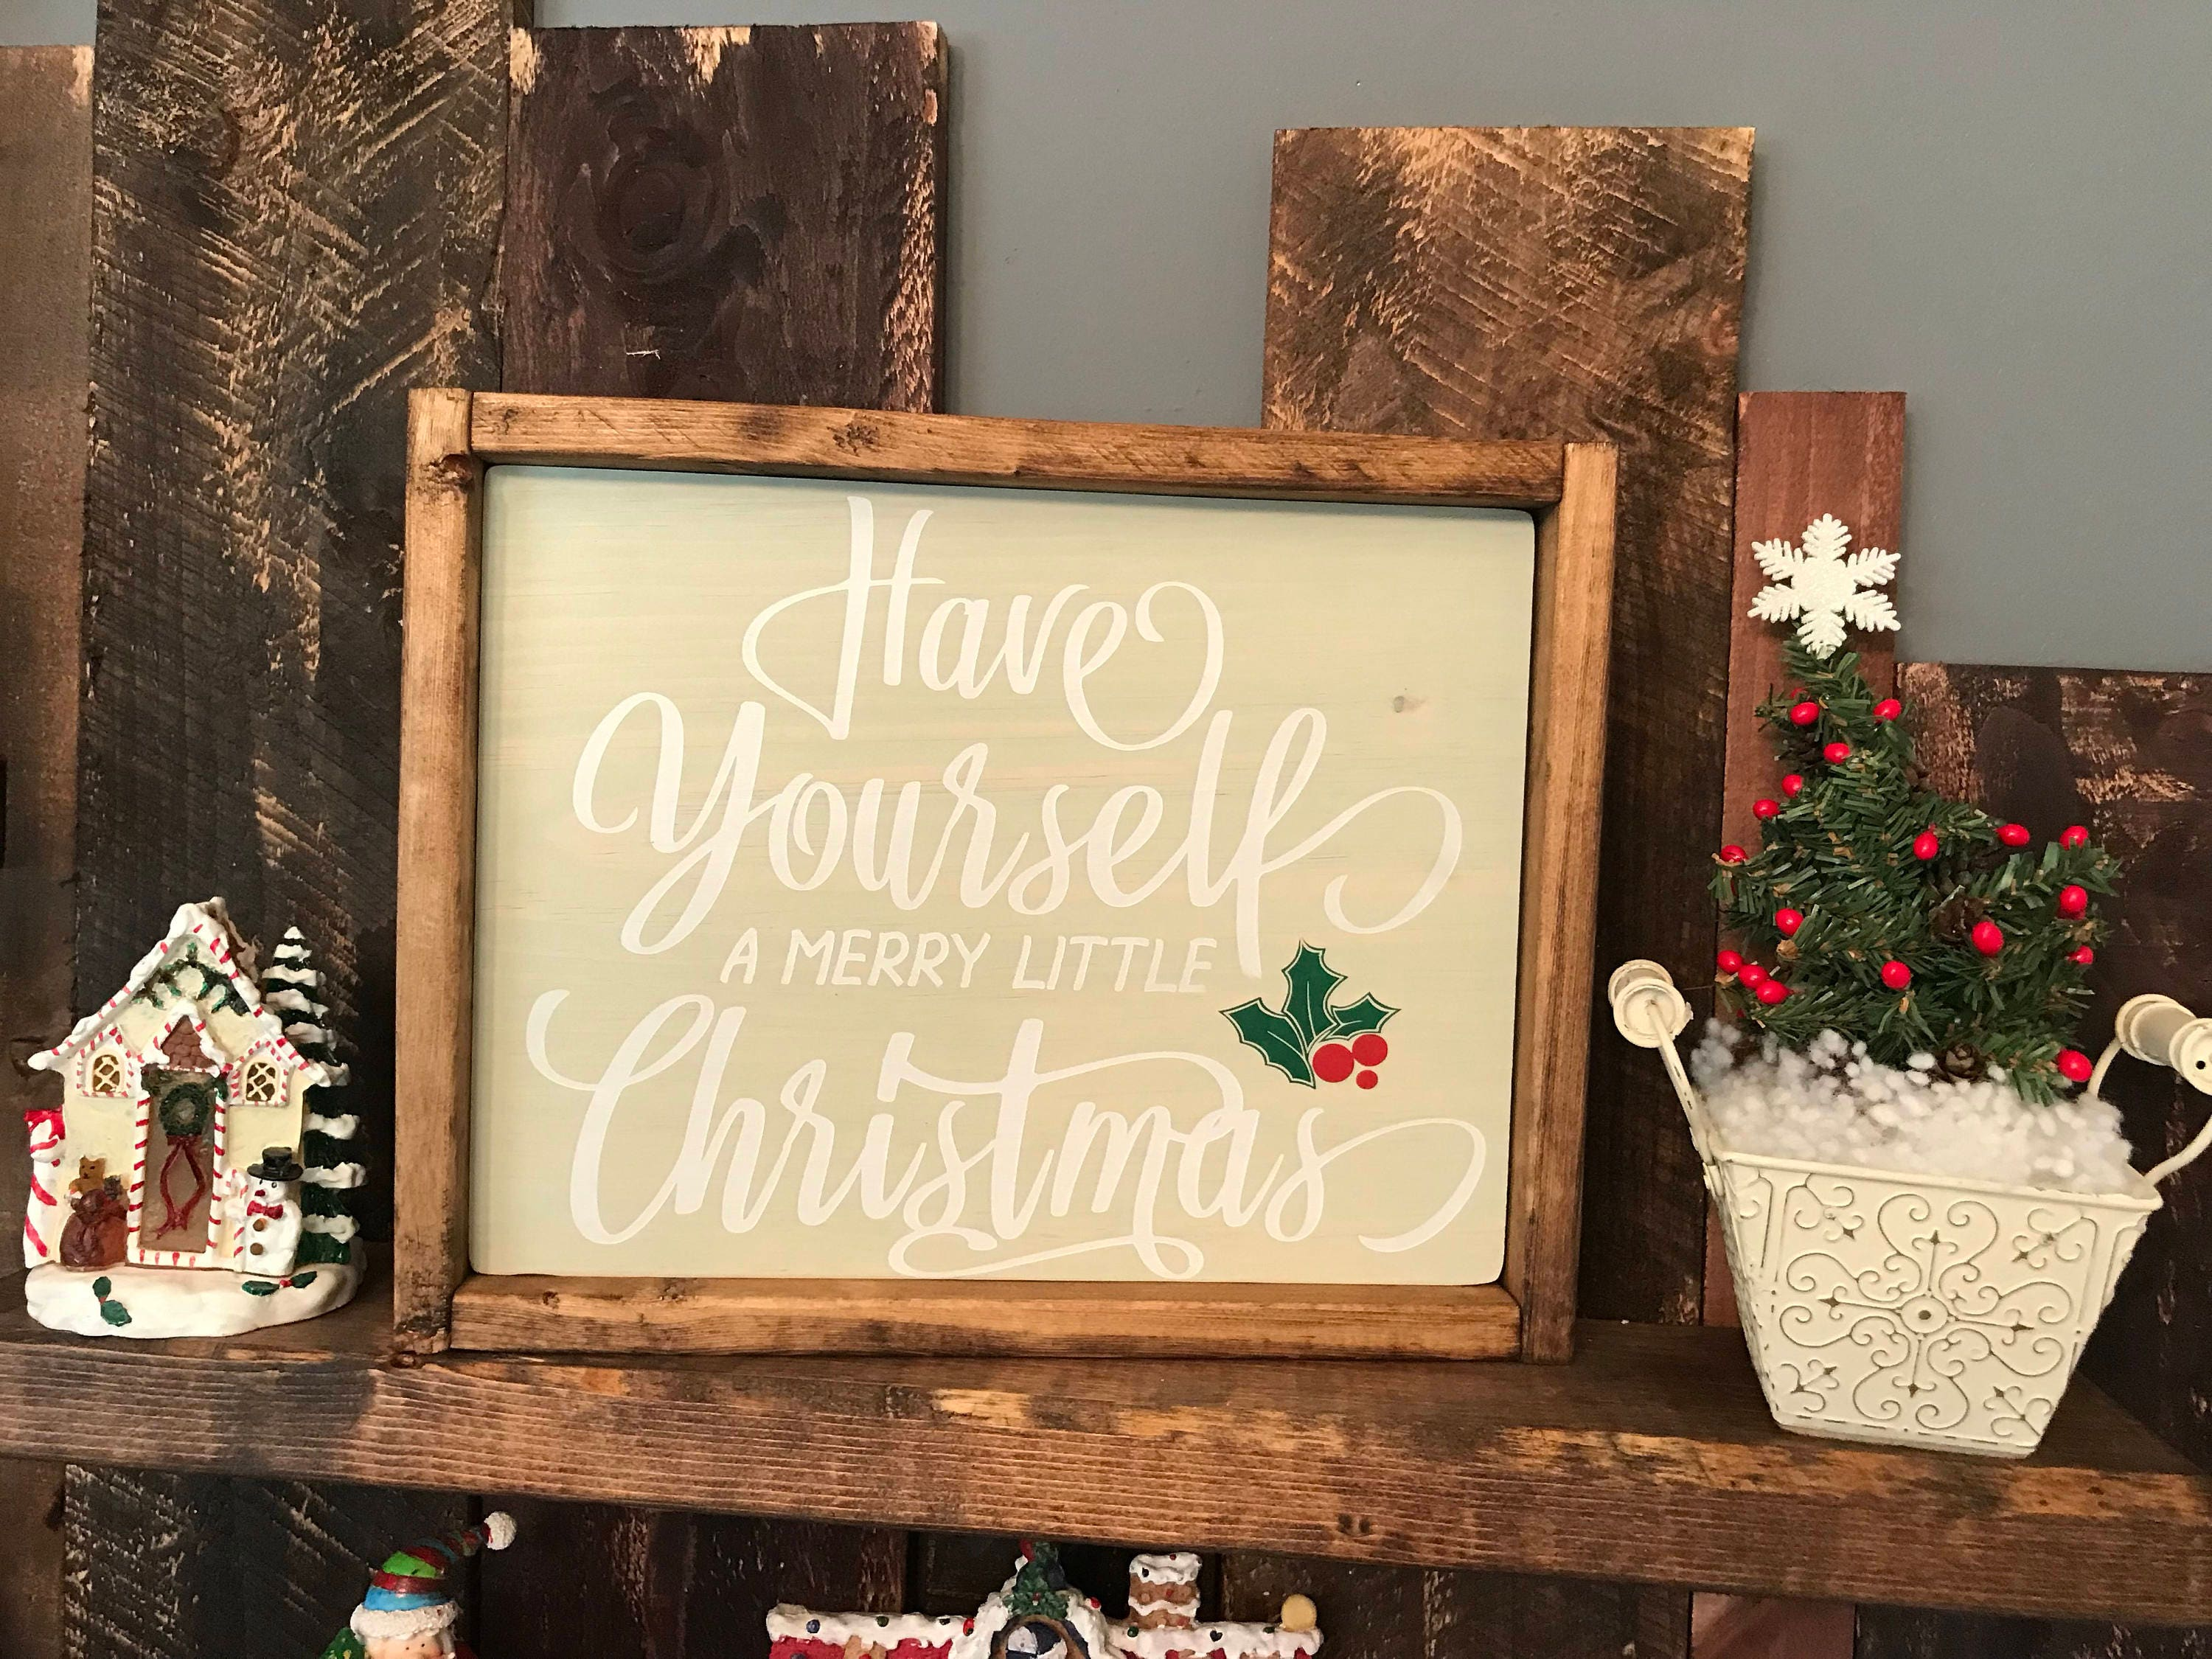 Have yourself a merry little christmas holiday decor